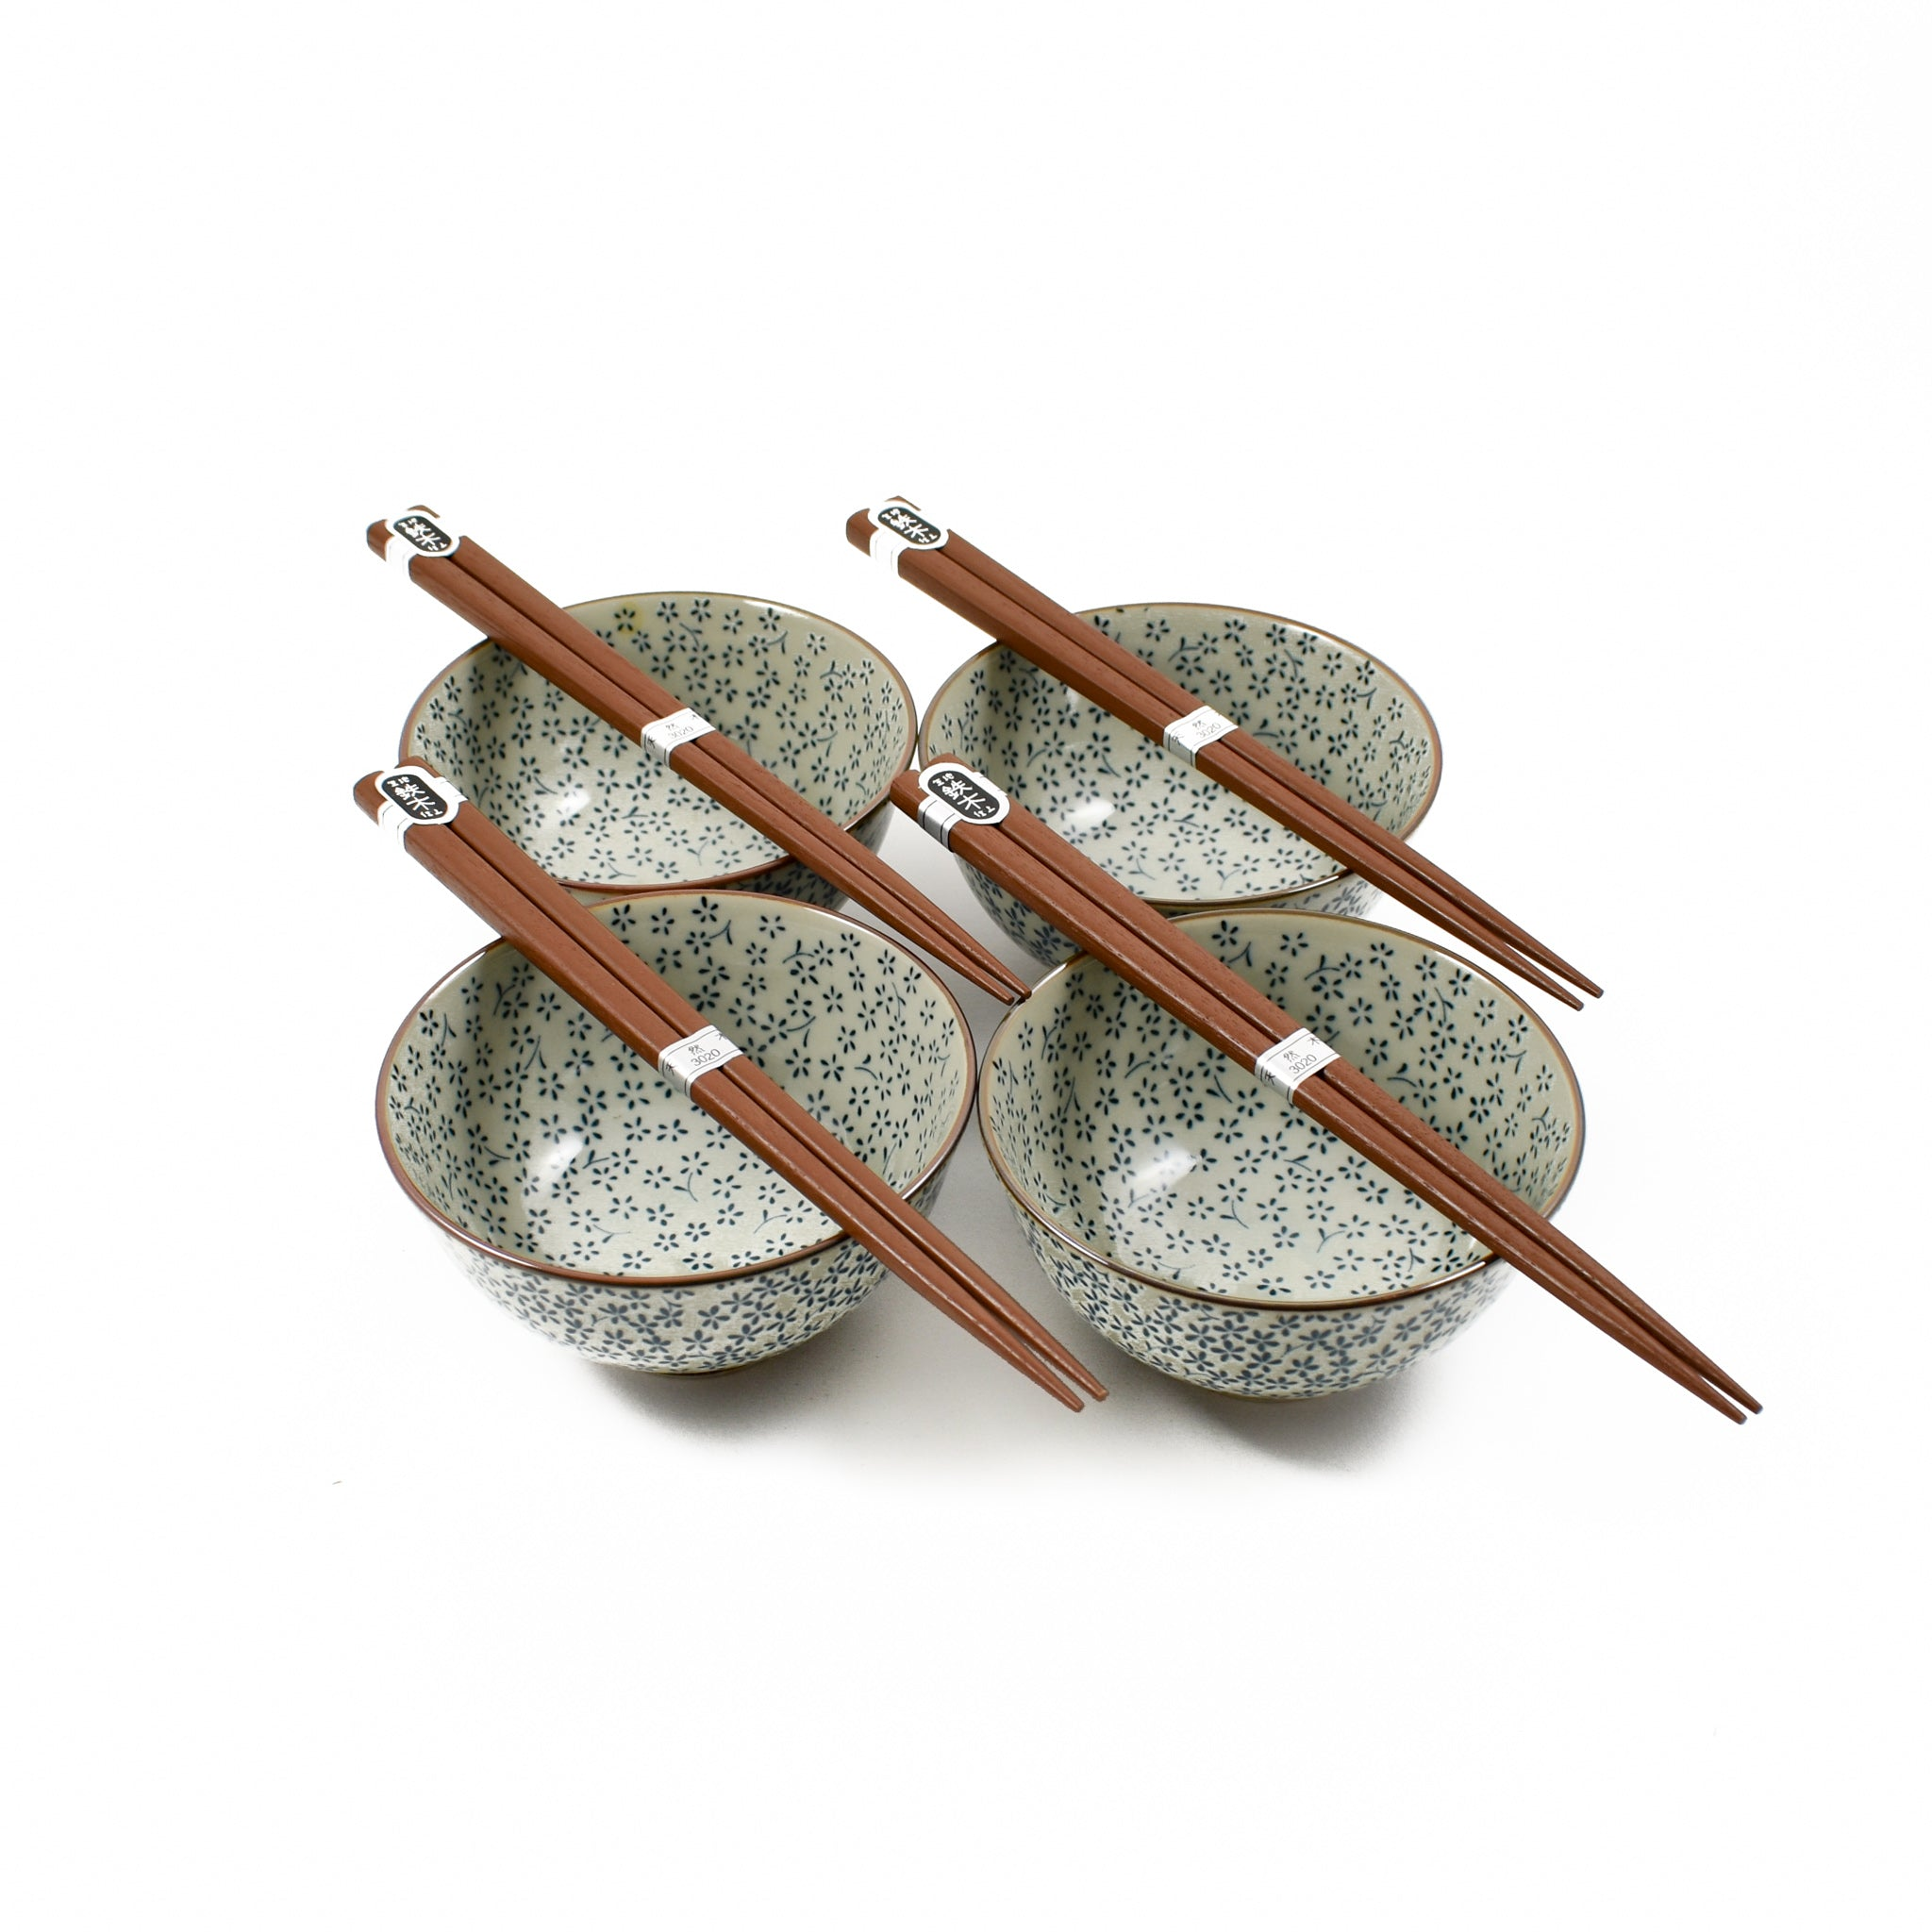 Kiji Stoneware & Ceramics Blue & White Flower Rice Bowl Set With Chopsticks Tableware Japanese Tableware Japanese Food